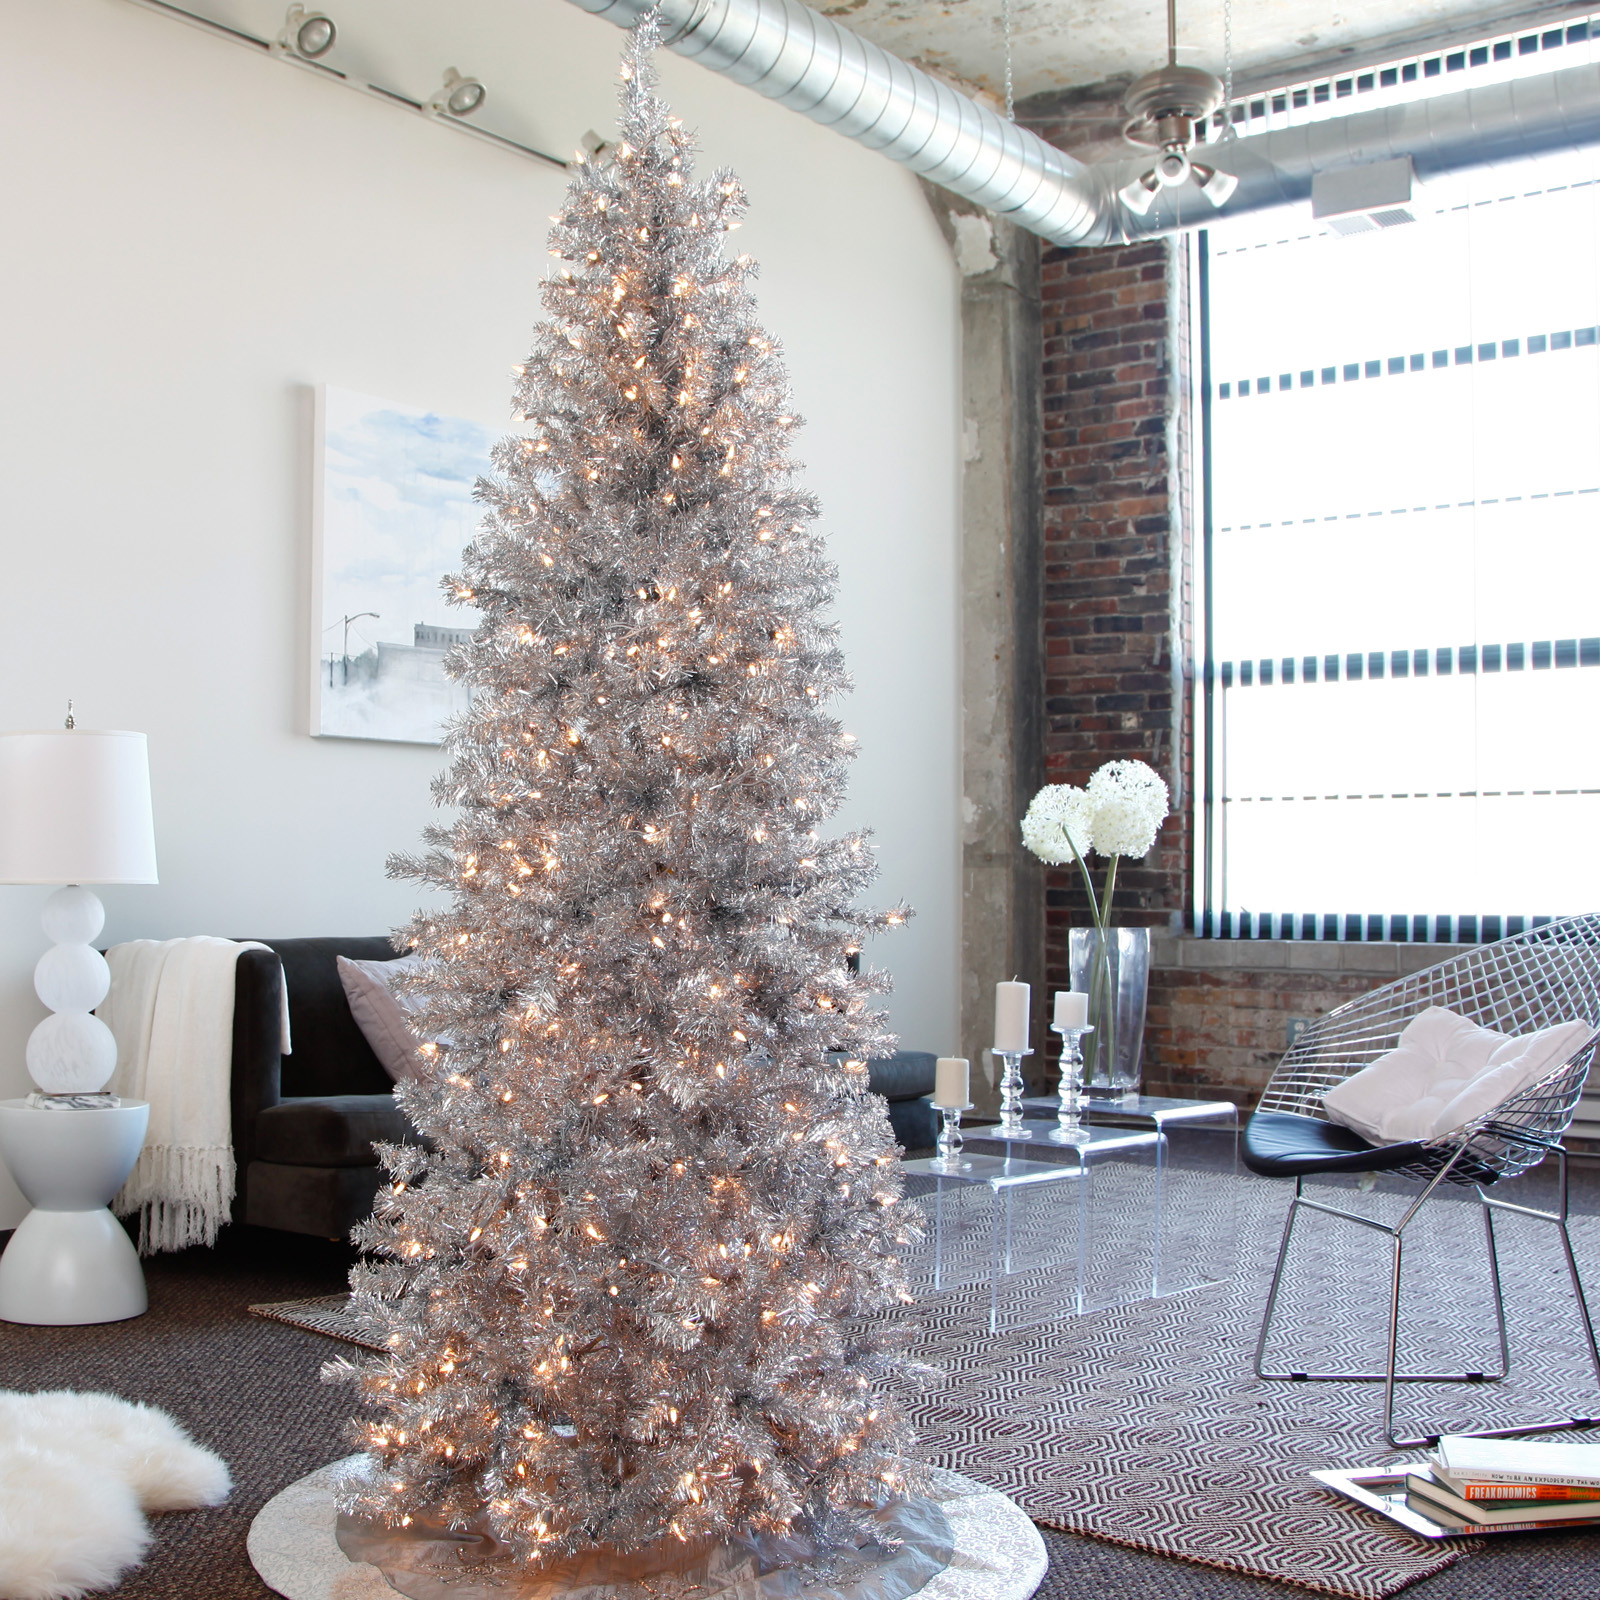 indoor decor ways to make your home festive during the holidays - Unique Contemporary Christmas Decorations